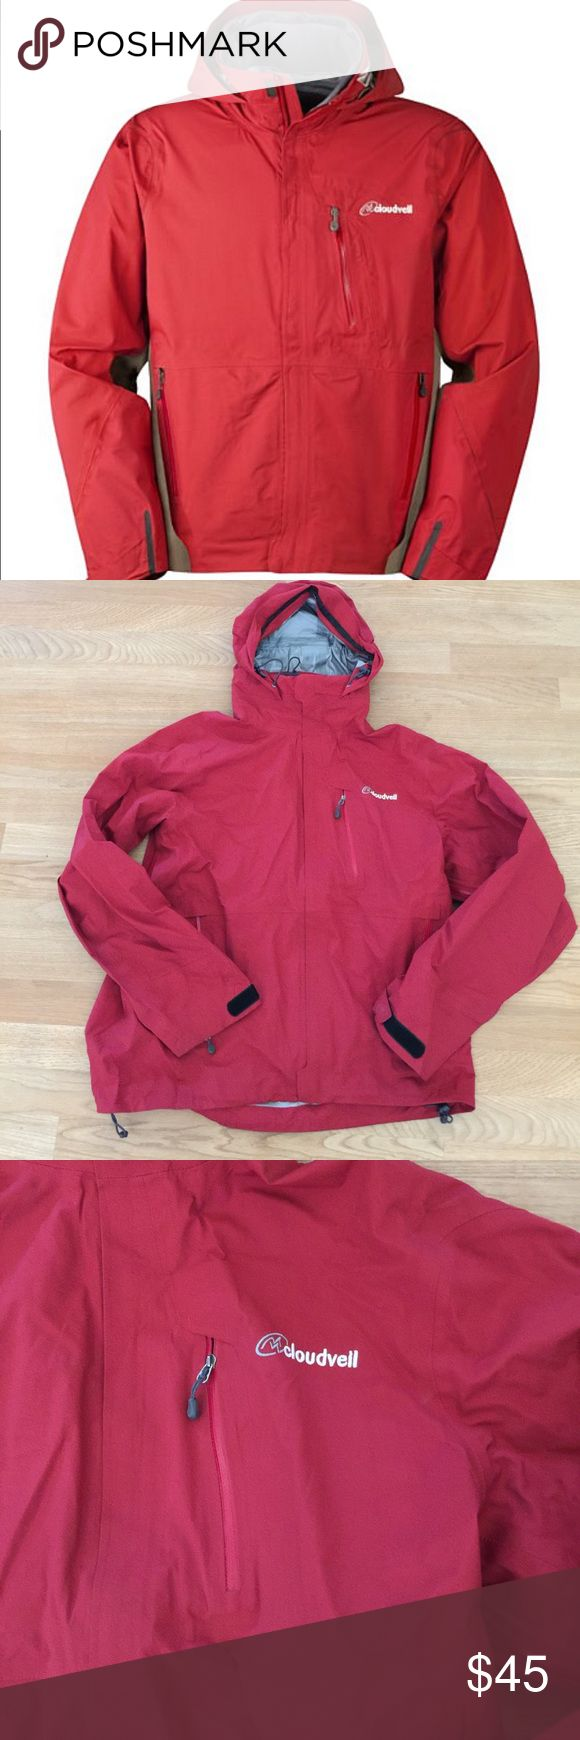 Men's Cloudveil raincoat Worn but in good condition great raincoat my husband just got a Patagonia that he likes more perfect for rainy season and camping bundle for a better price! cloudveil Jackets & Coats Raincoats